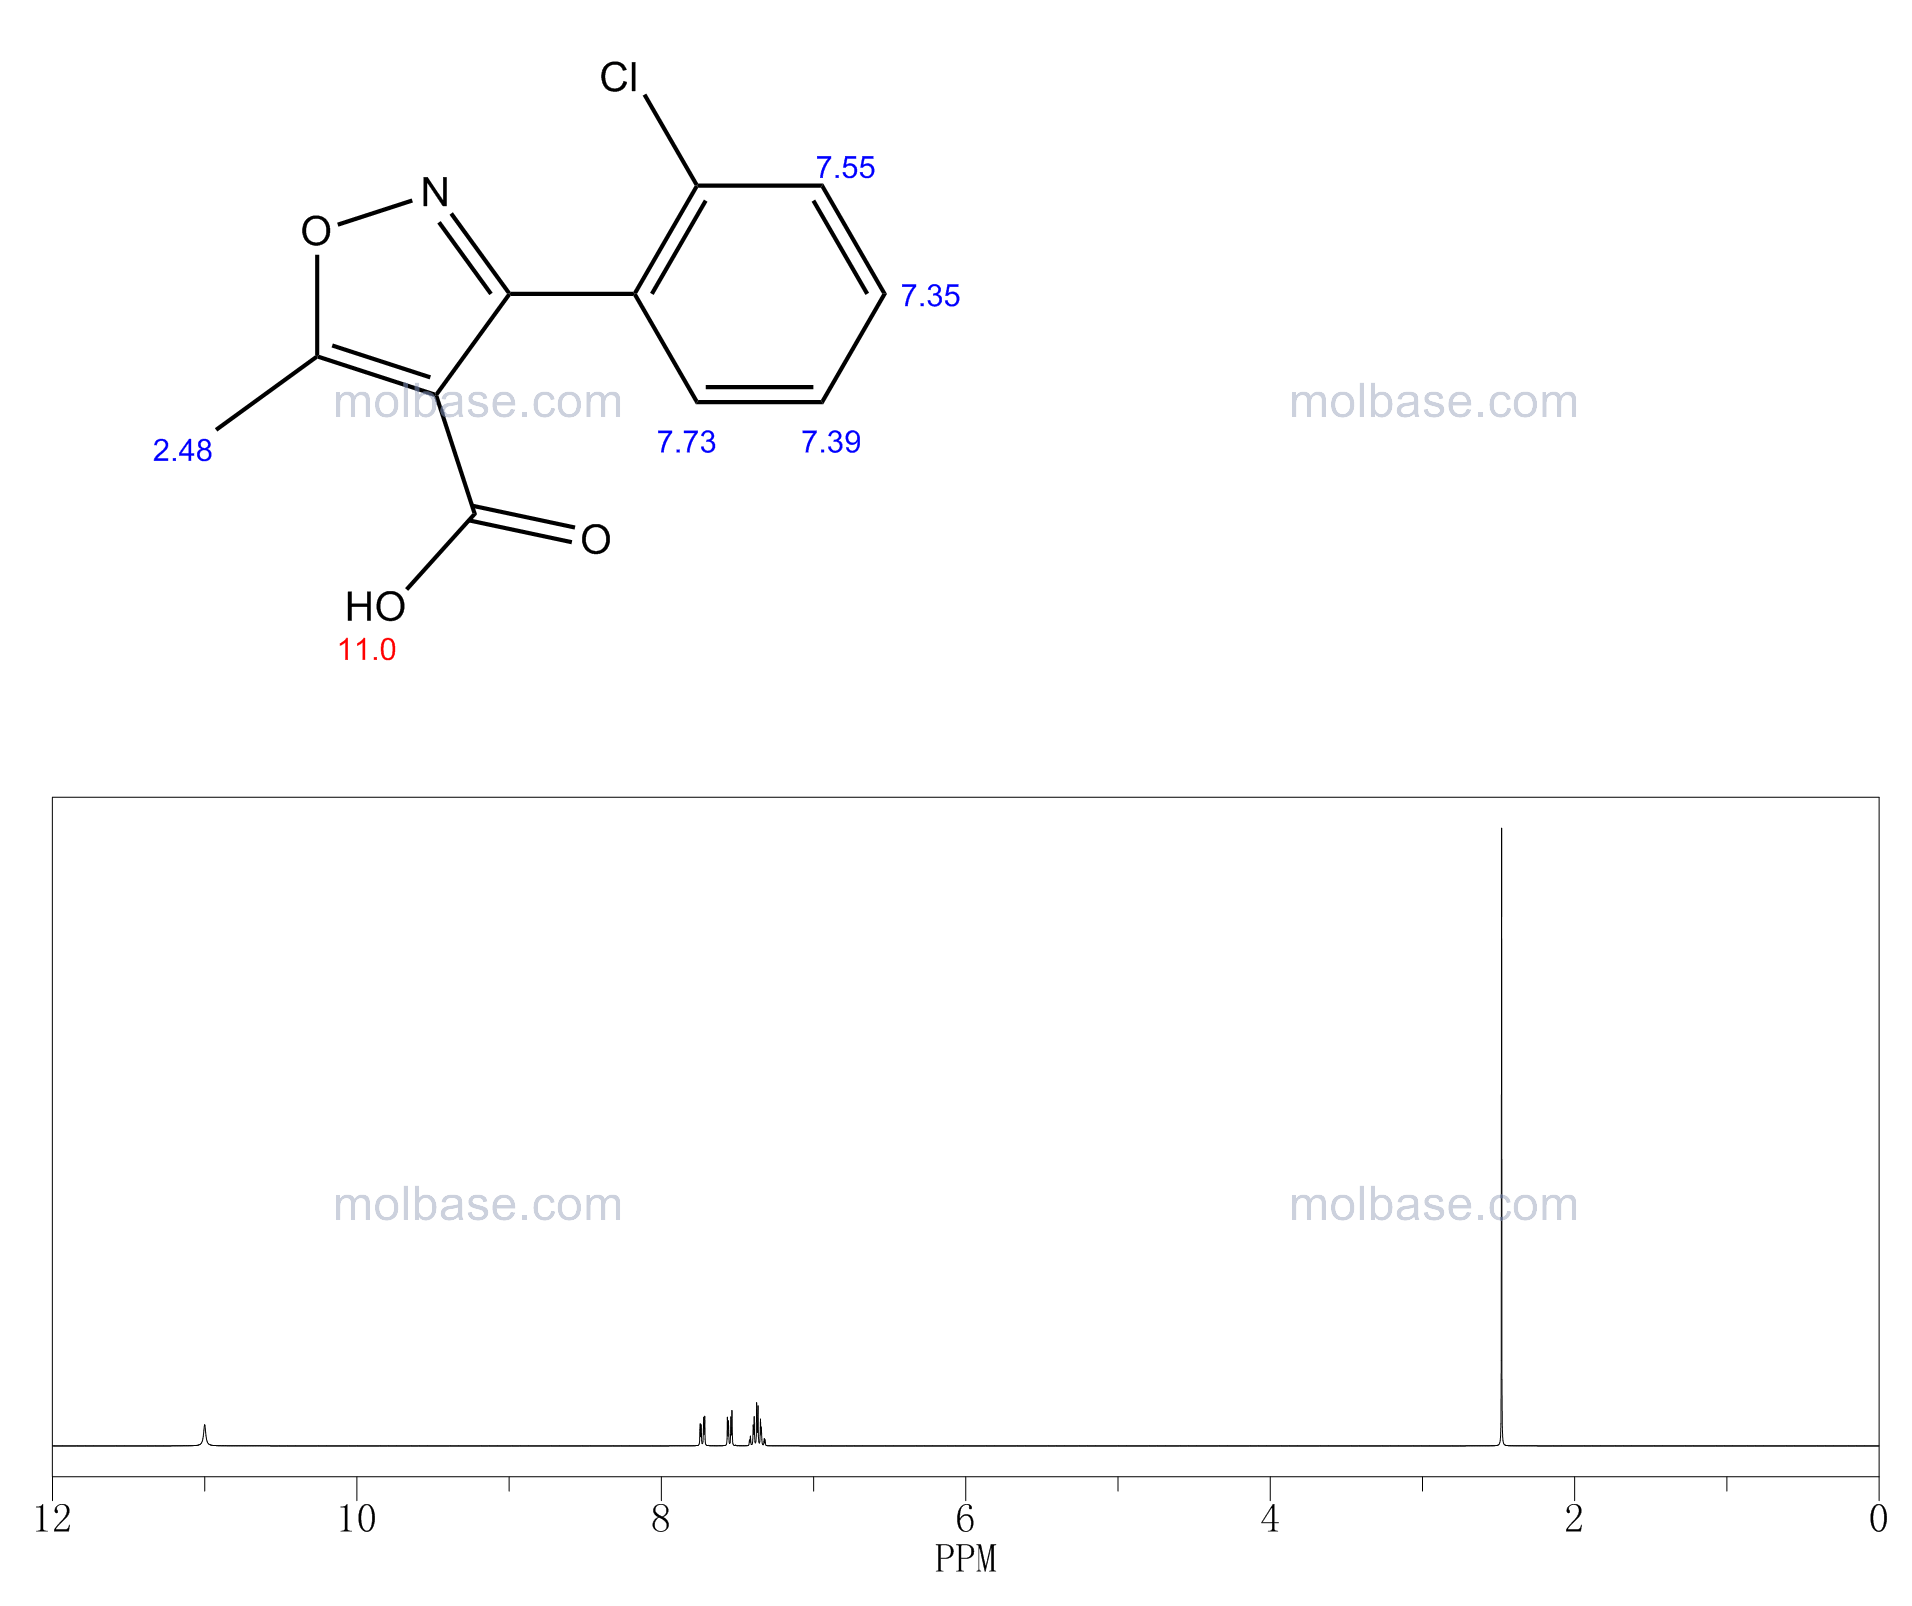 3-(2-chlorophenyl)-5-methyl-1,2-oxazole-4-carboxylic acid NMR spectra analysis, Chemical CAS NO. 23598-72-3 NMR spectral analysis, 3-(2-chlorophenyl)-5-methyl-1,2-oxazole-4-carboxylic acid C-NMR spectrum